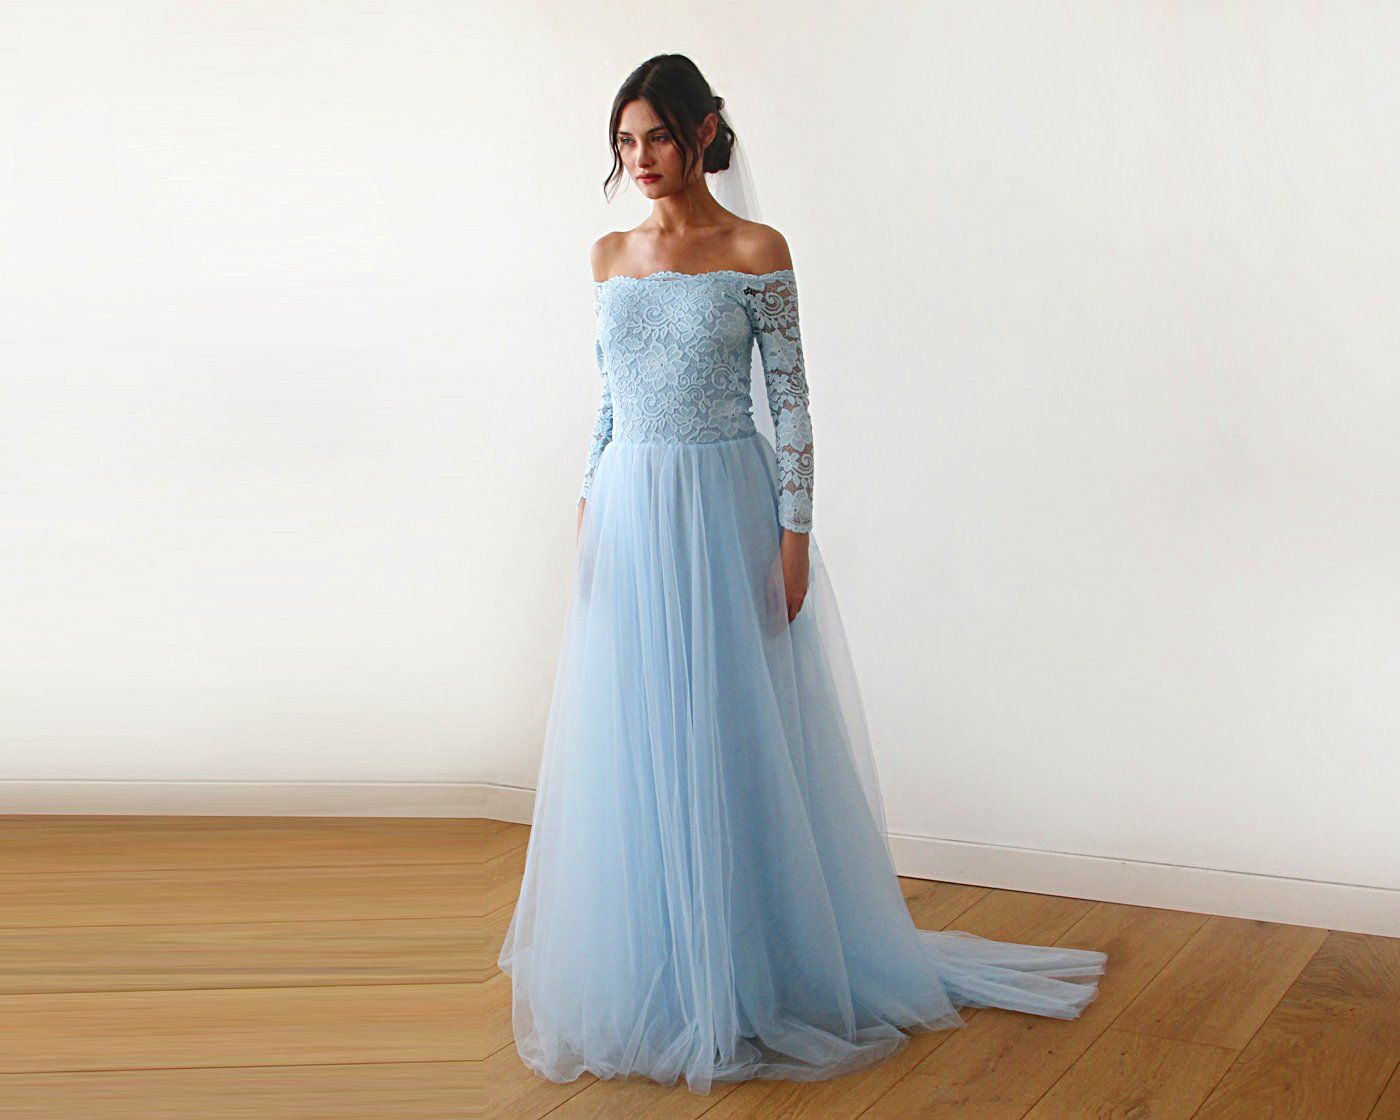 392a7bd43c2df9 Light blue Off-The-Shoulder Lace and Tulle Train Wedding Gown 1162 ...